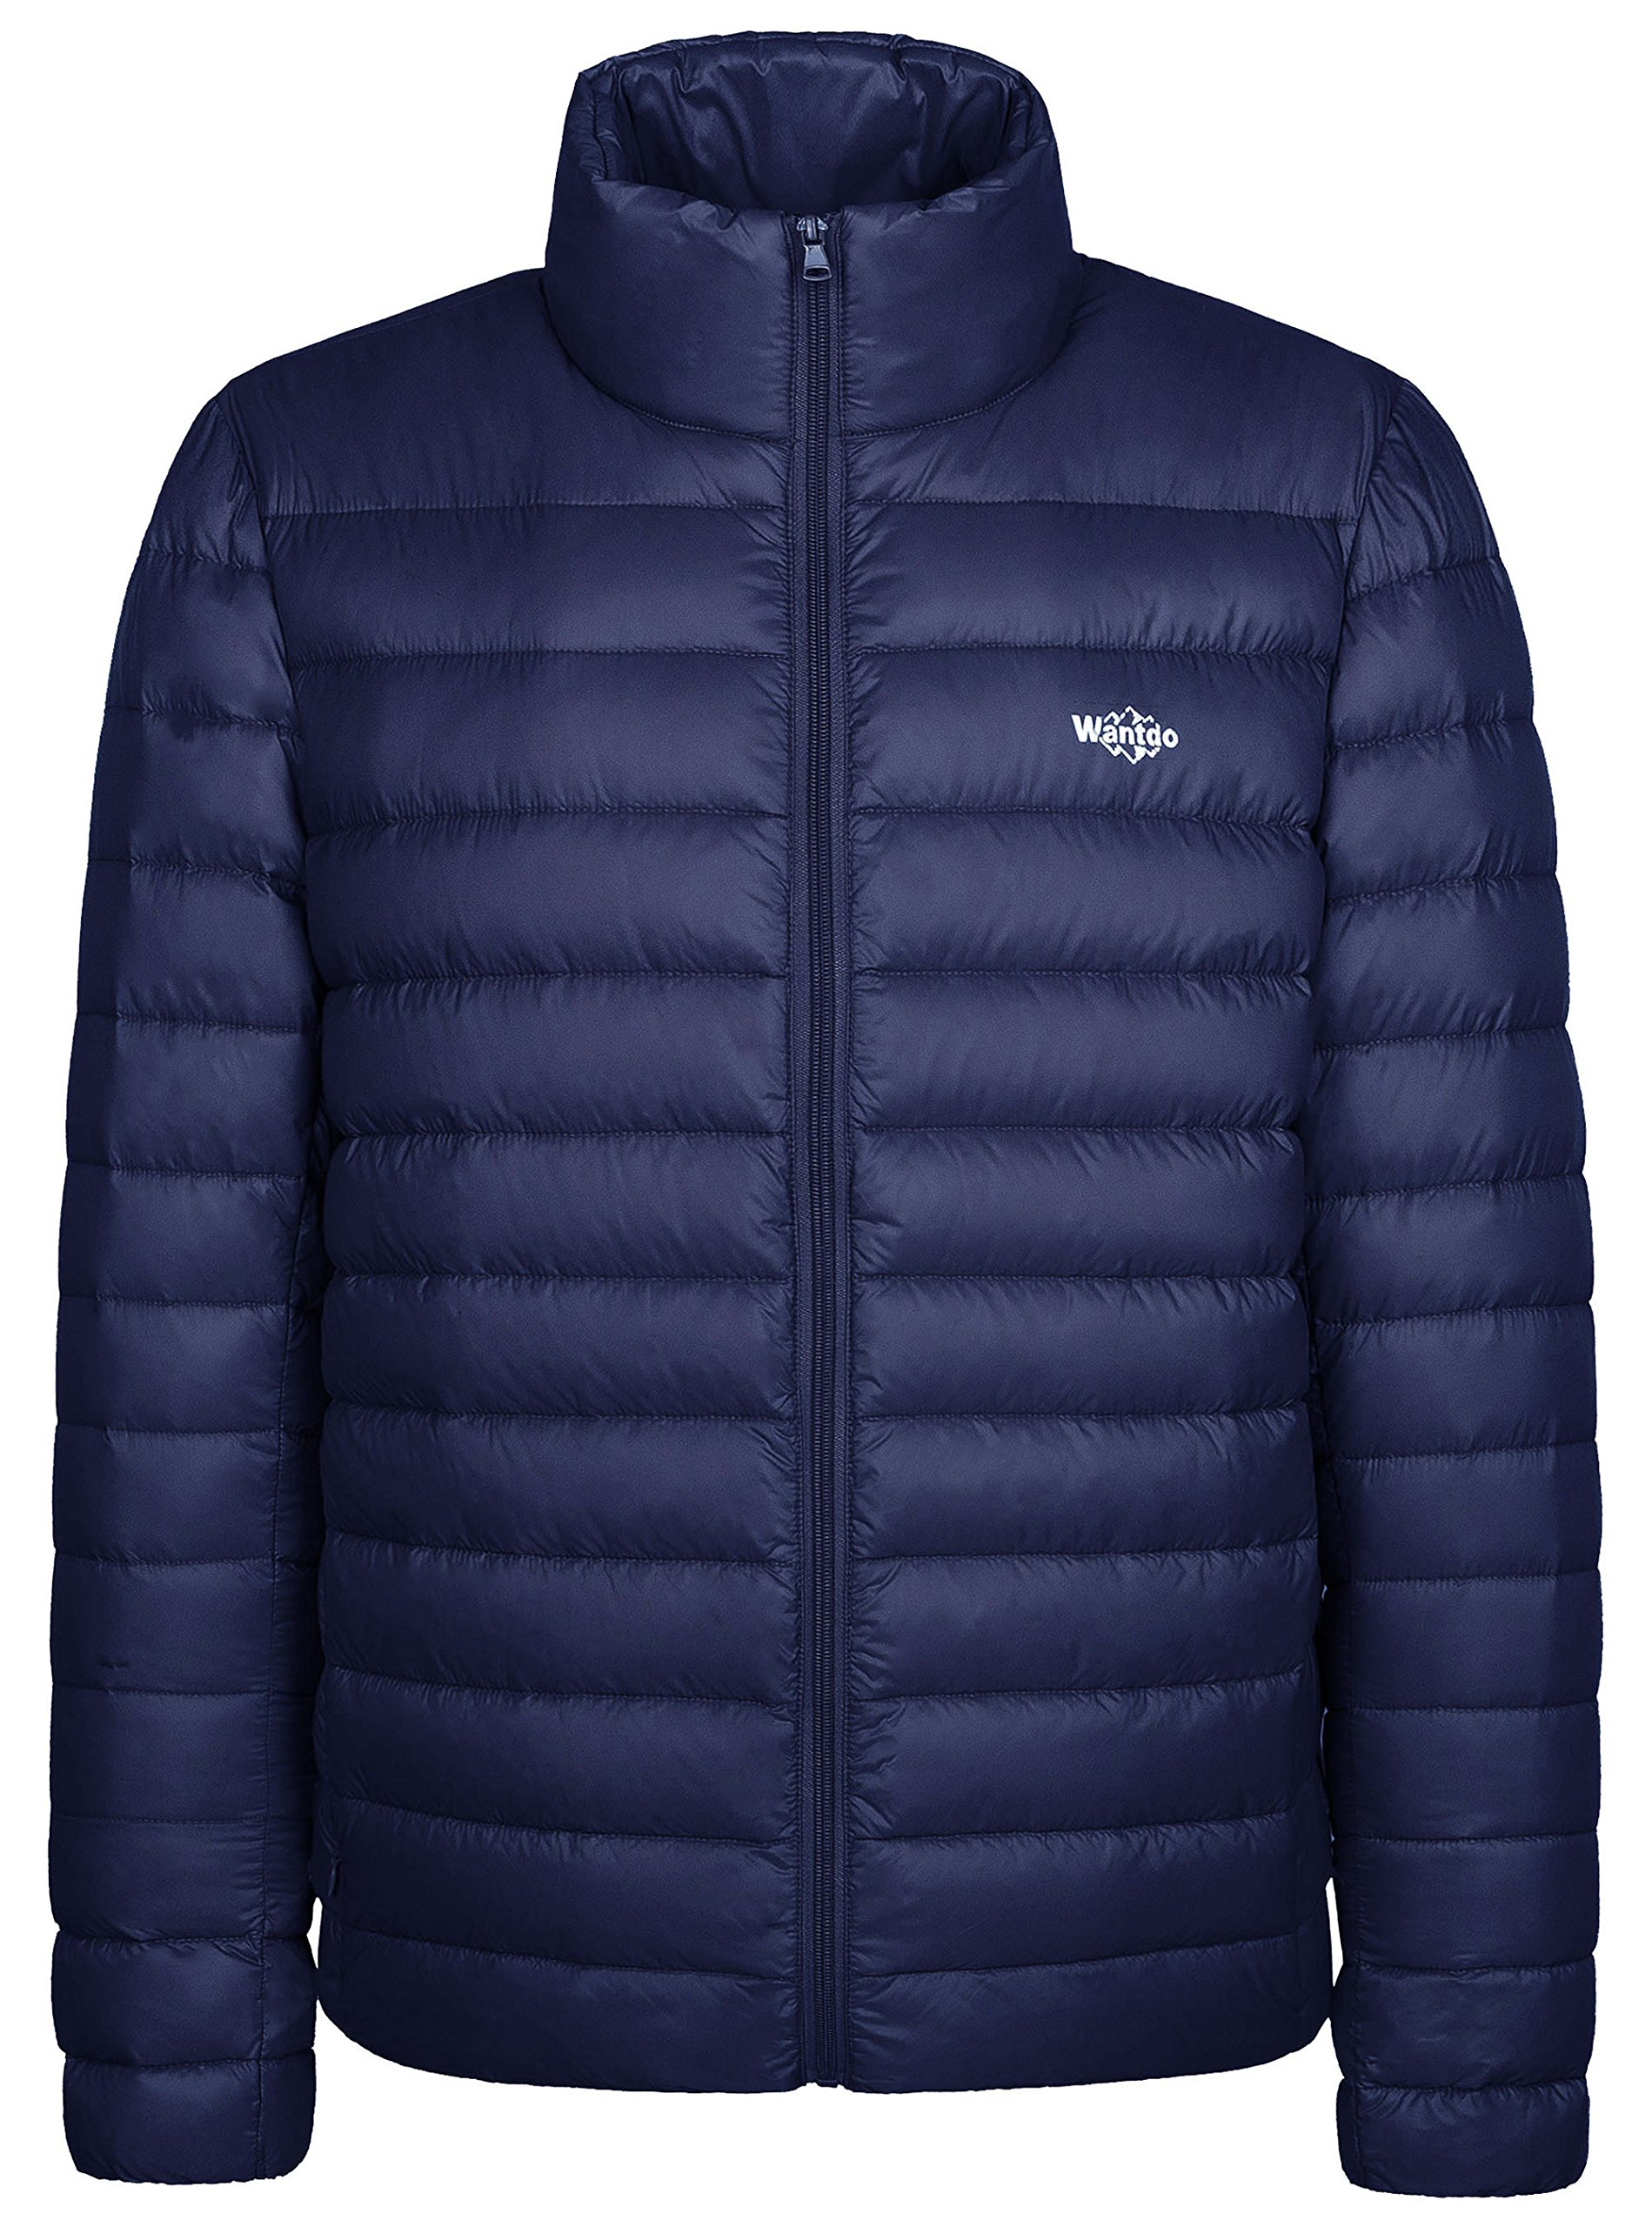 Wantdo Men's Packable Stand Collar Light Weight Down Jacket X-Large Navy